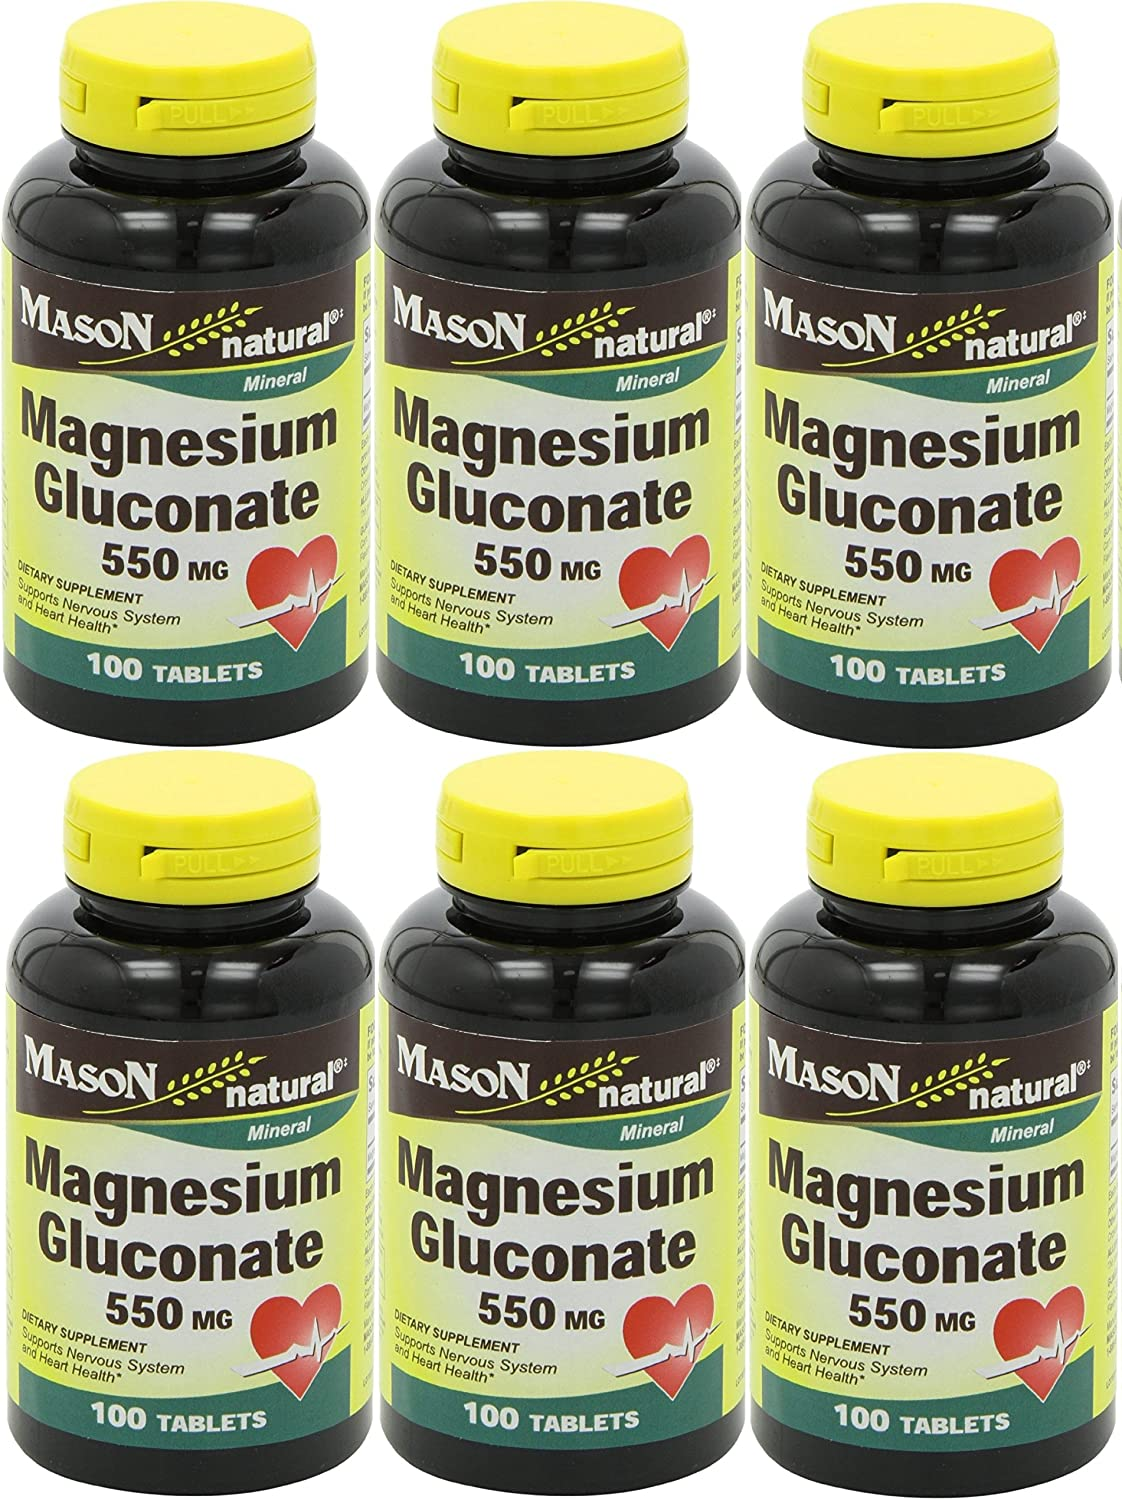 Mason Vitamins Magnesium Gluconate 550 mg Tablets for Support of Nervous System Heart Health* 100 Tablets per Bottle Pack of 6 Total 600 Tablets